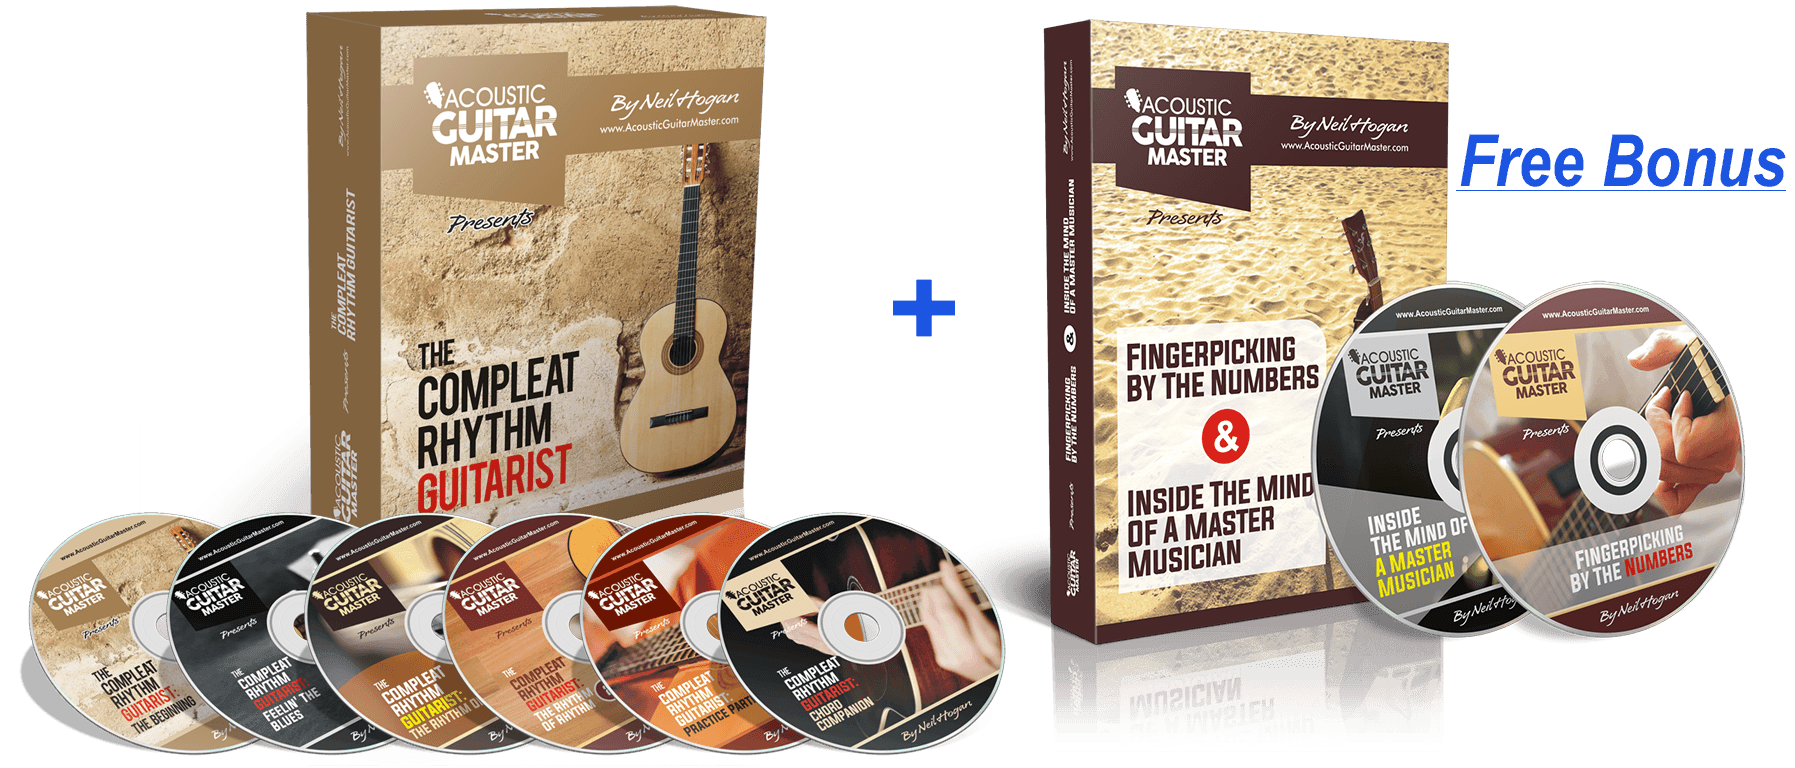 Acoustic Guitar Master Mega DVD Collection